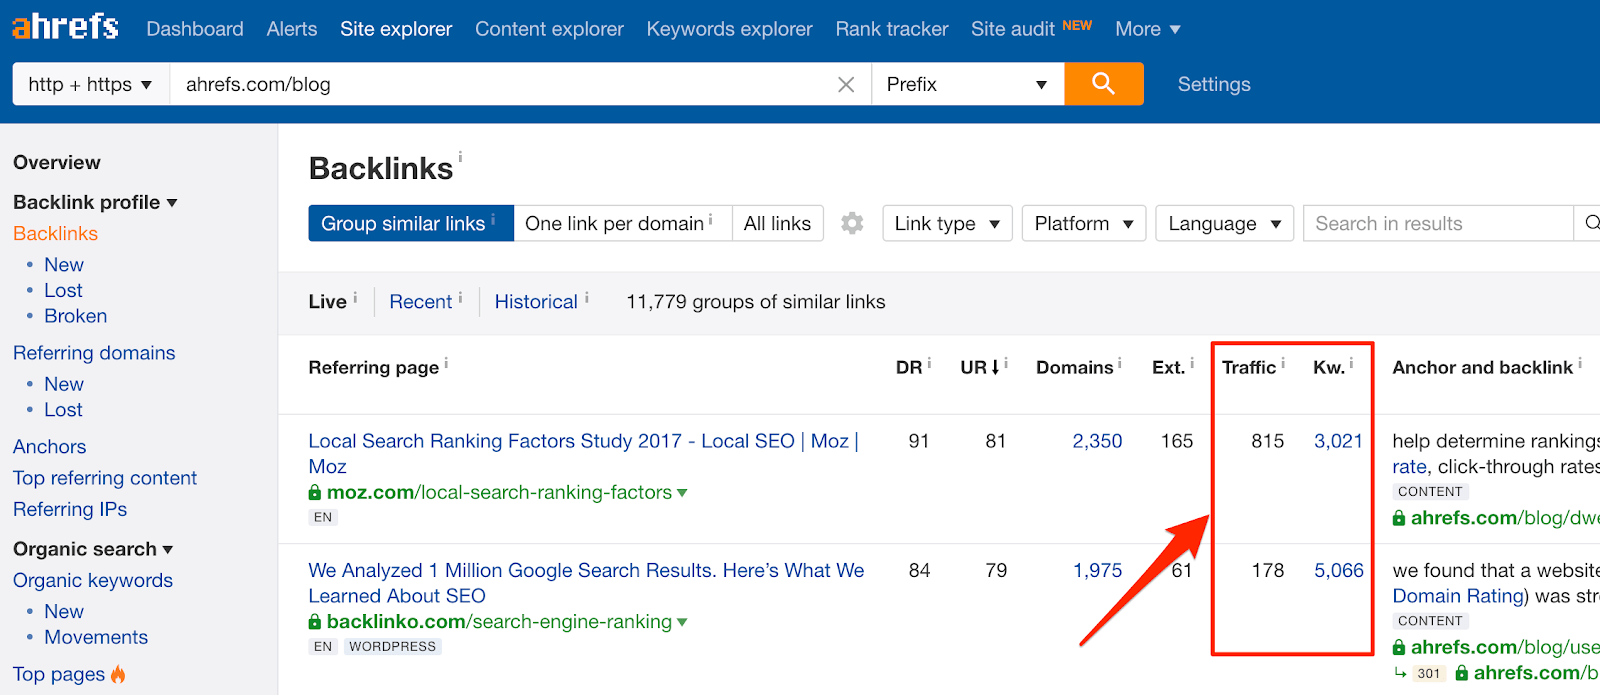 External Backlinks grouped by Similar Links ahrefs com blog on Ahrefs